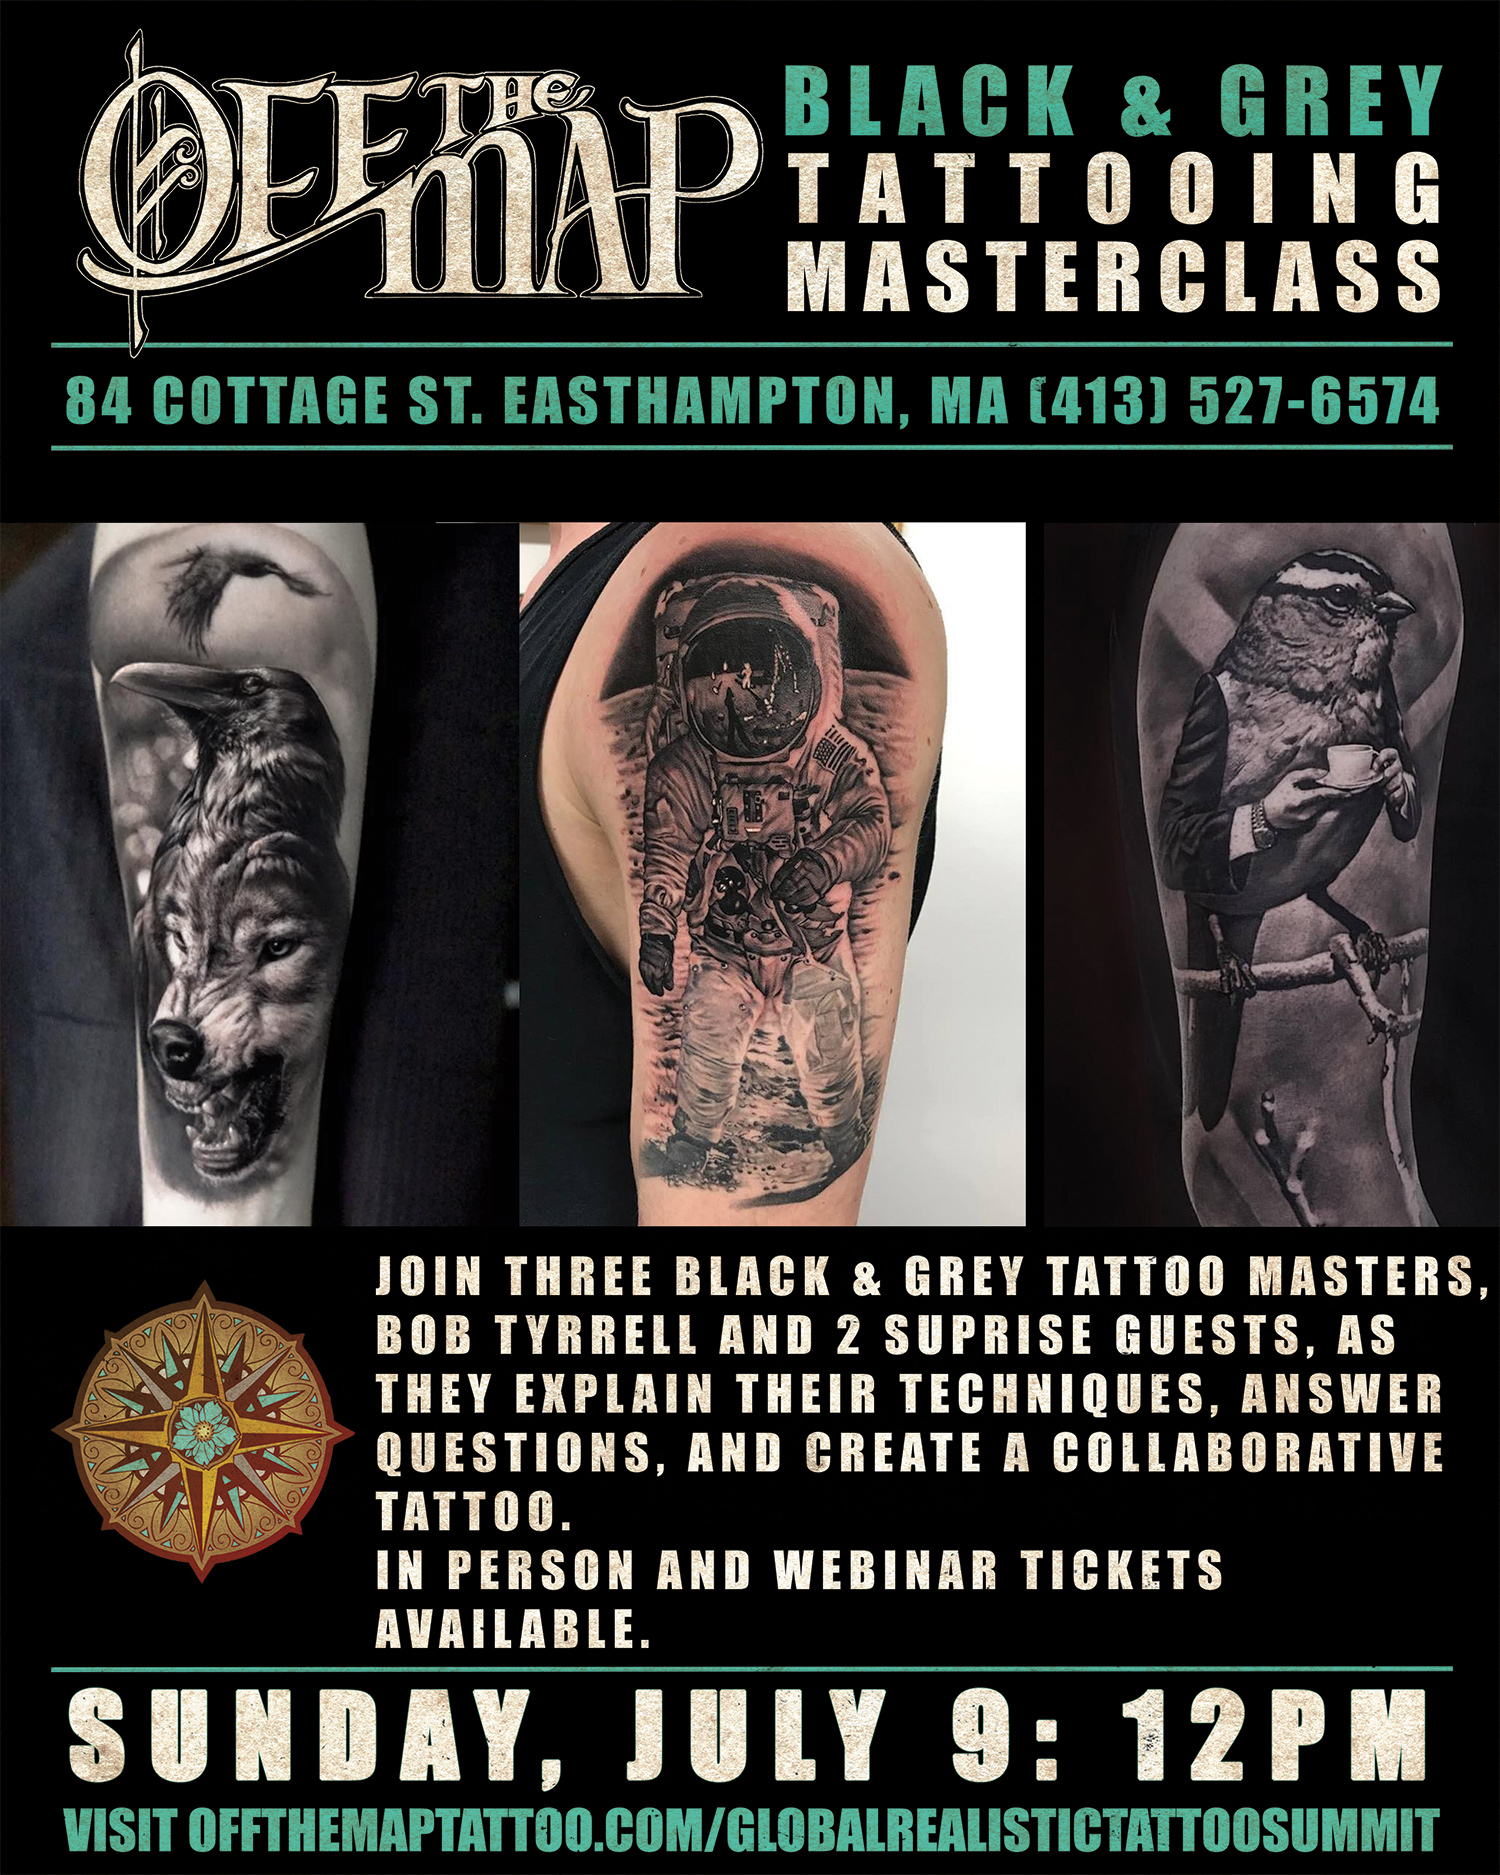 Black & Grey Tattooing Masterclass - Webinar ON DEMAND